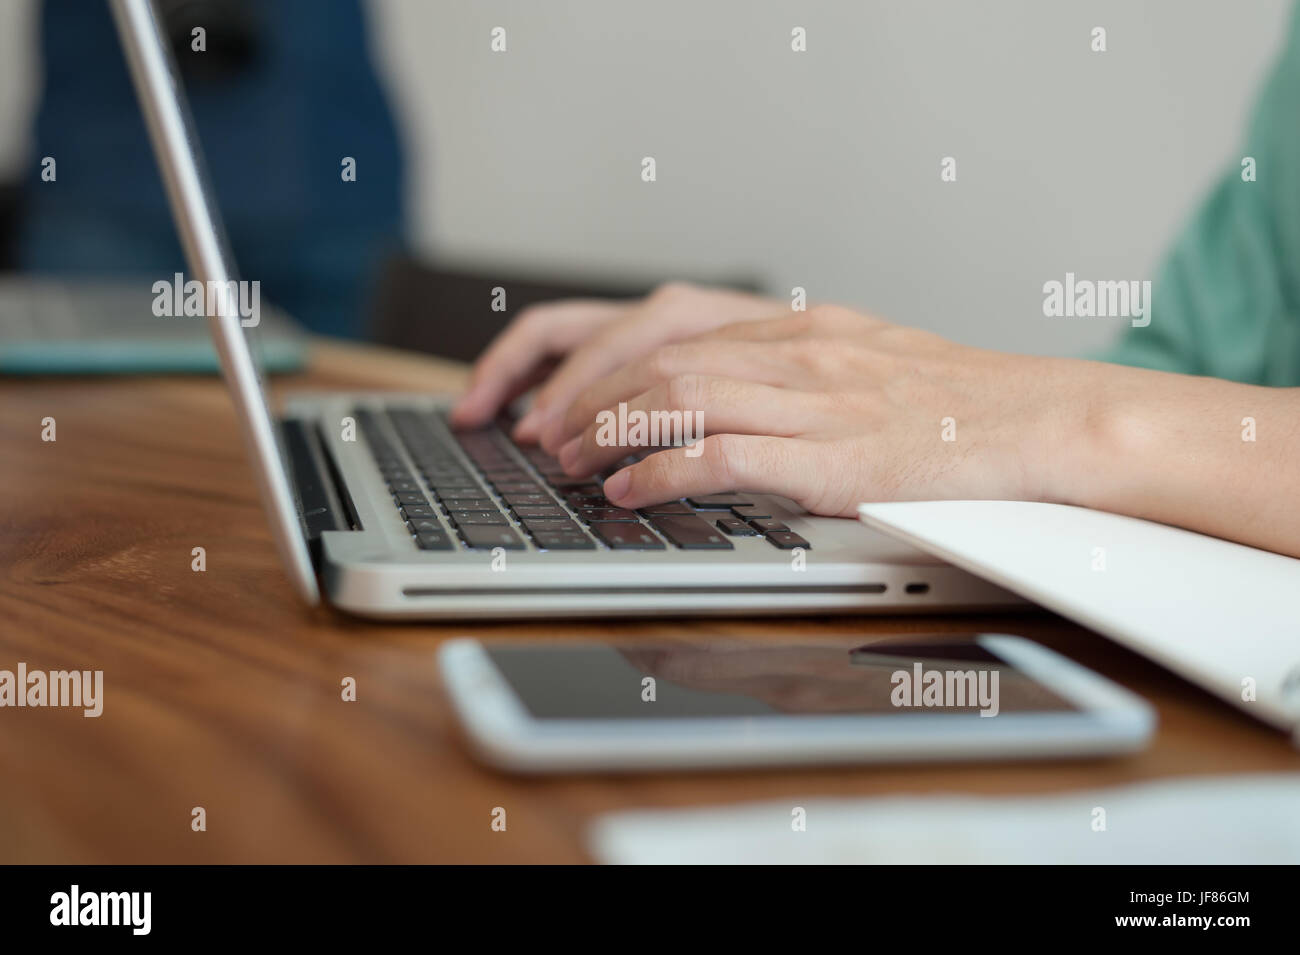 Asian male hand typing on laptop computer keyboard while working in coffee shop on workday. Freelancer lifestyle - Stock Image